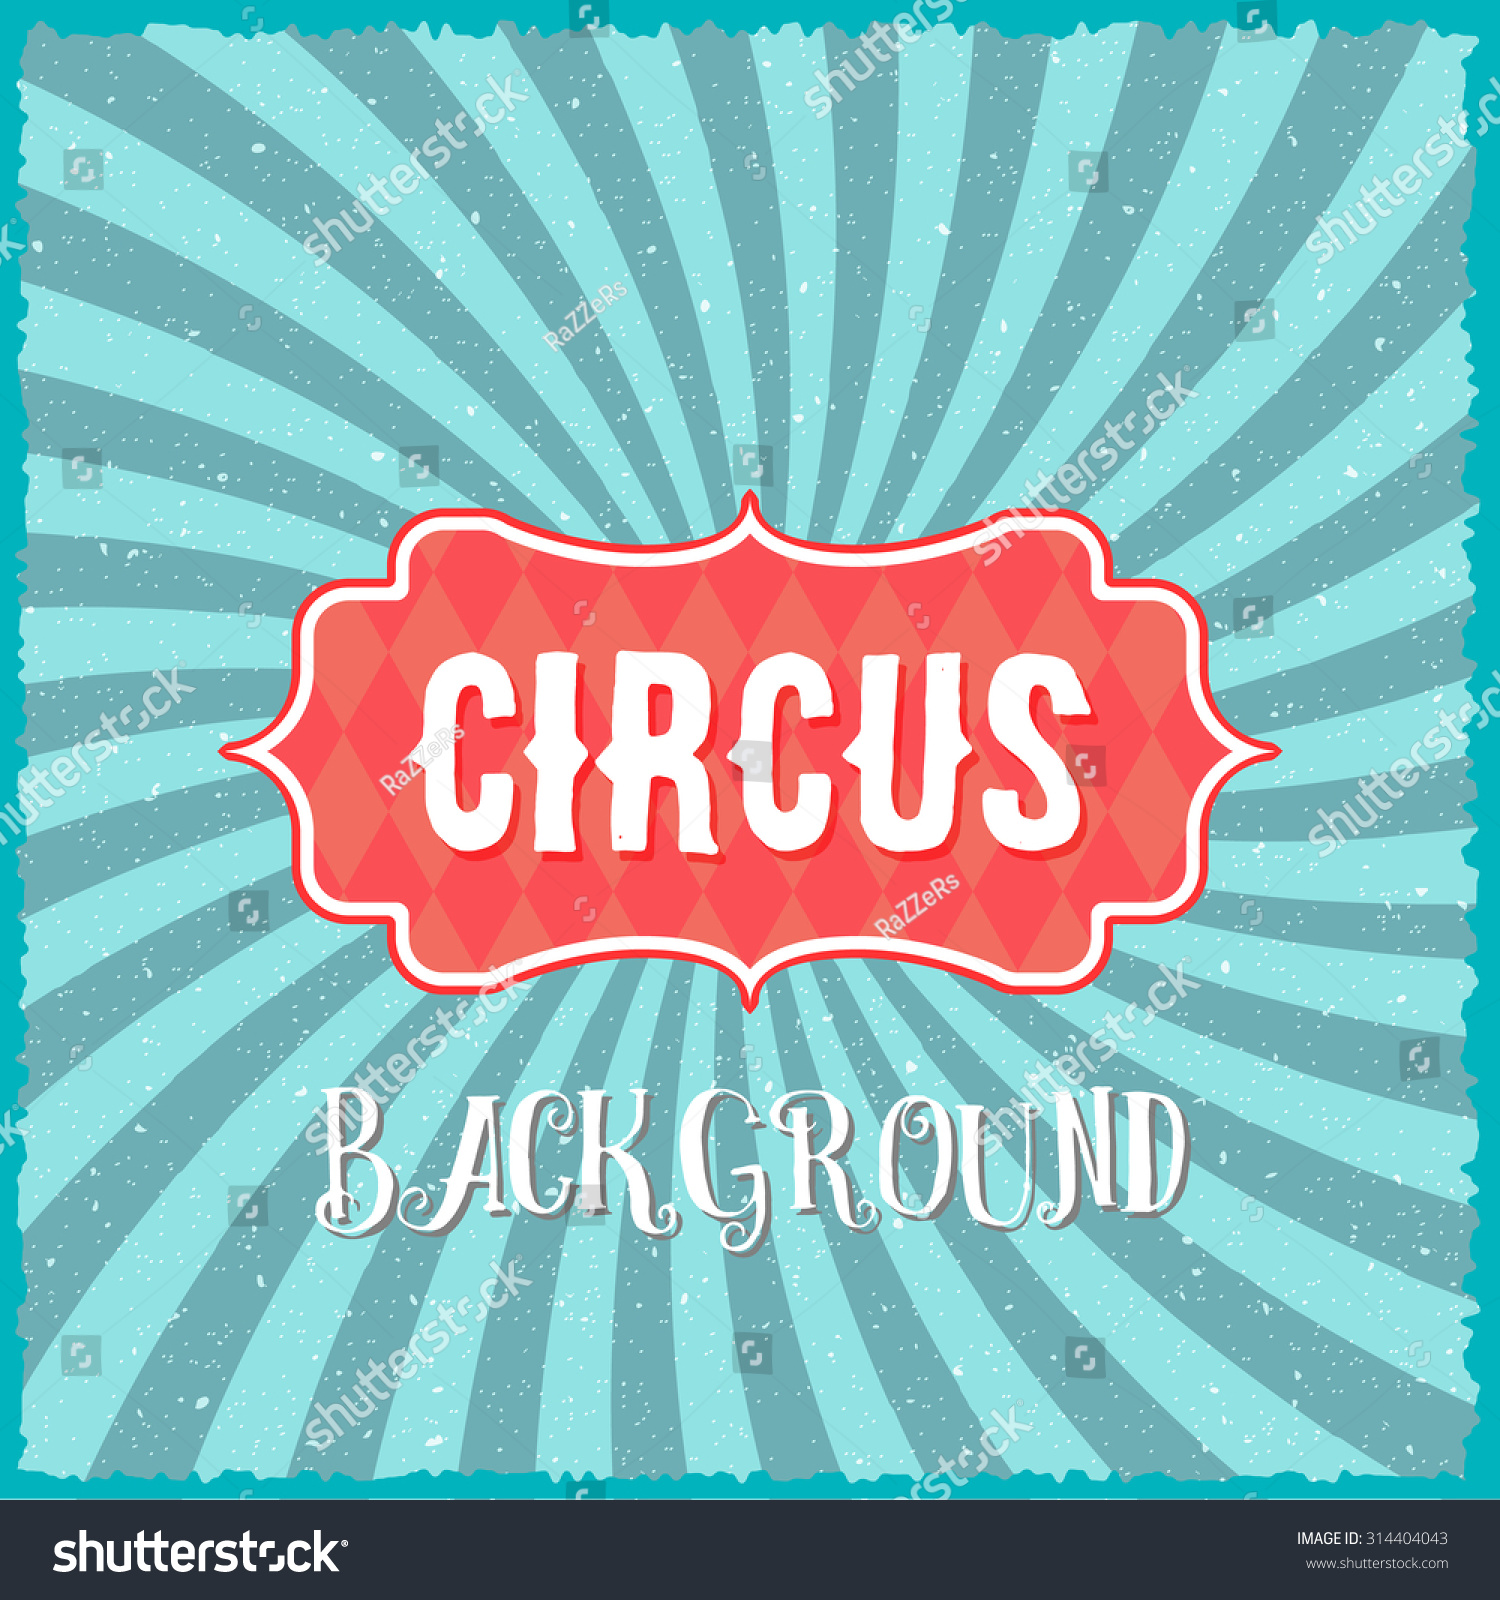 circus flyer background - photo #36